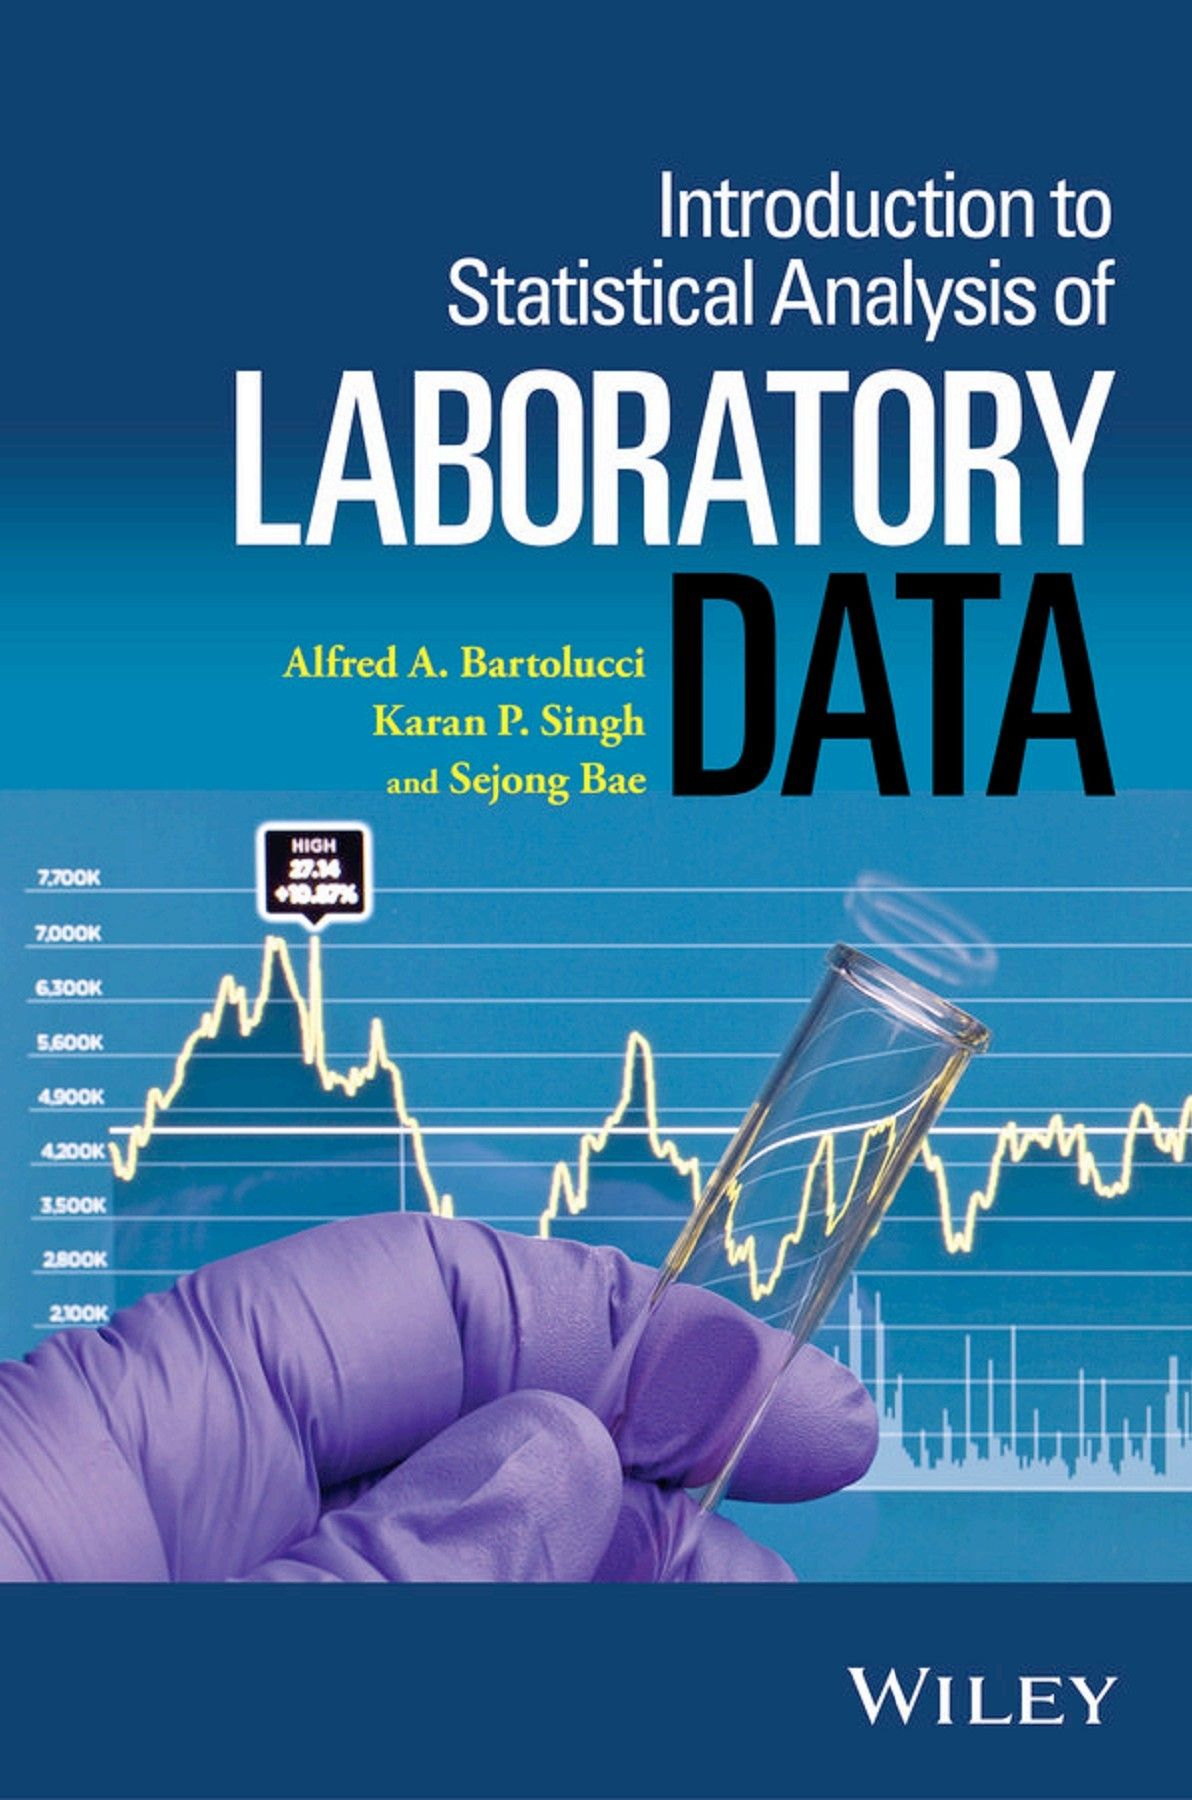 Introduction to Statistical Analysis of Laboratory Data